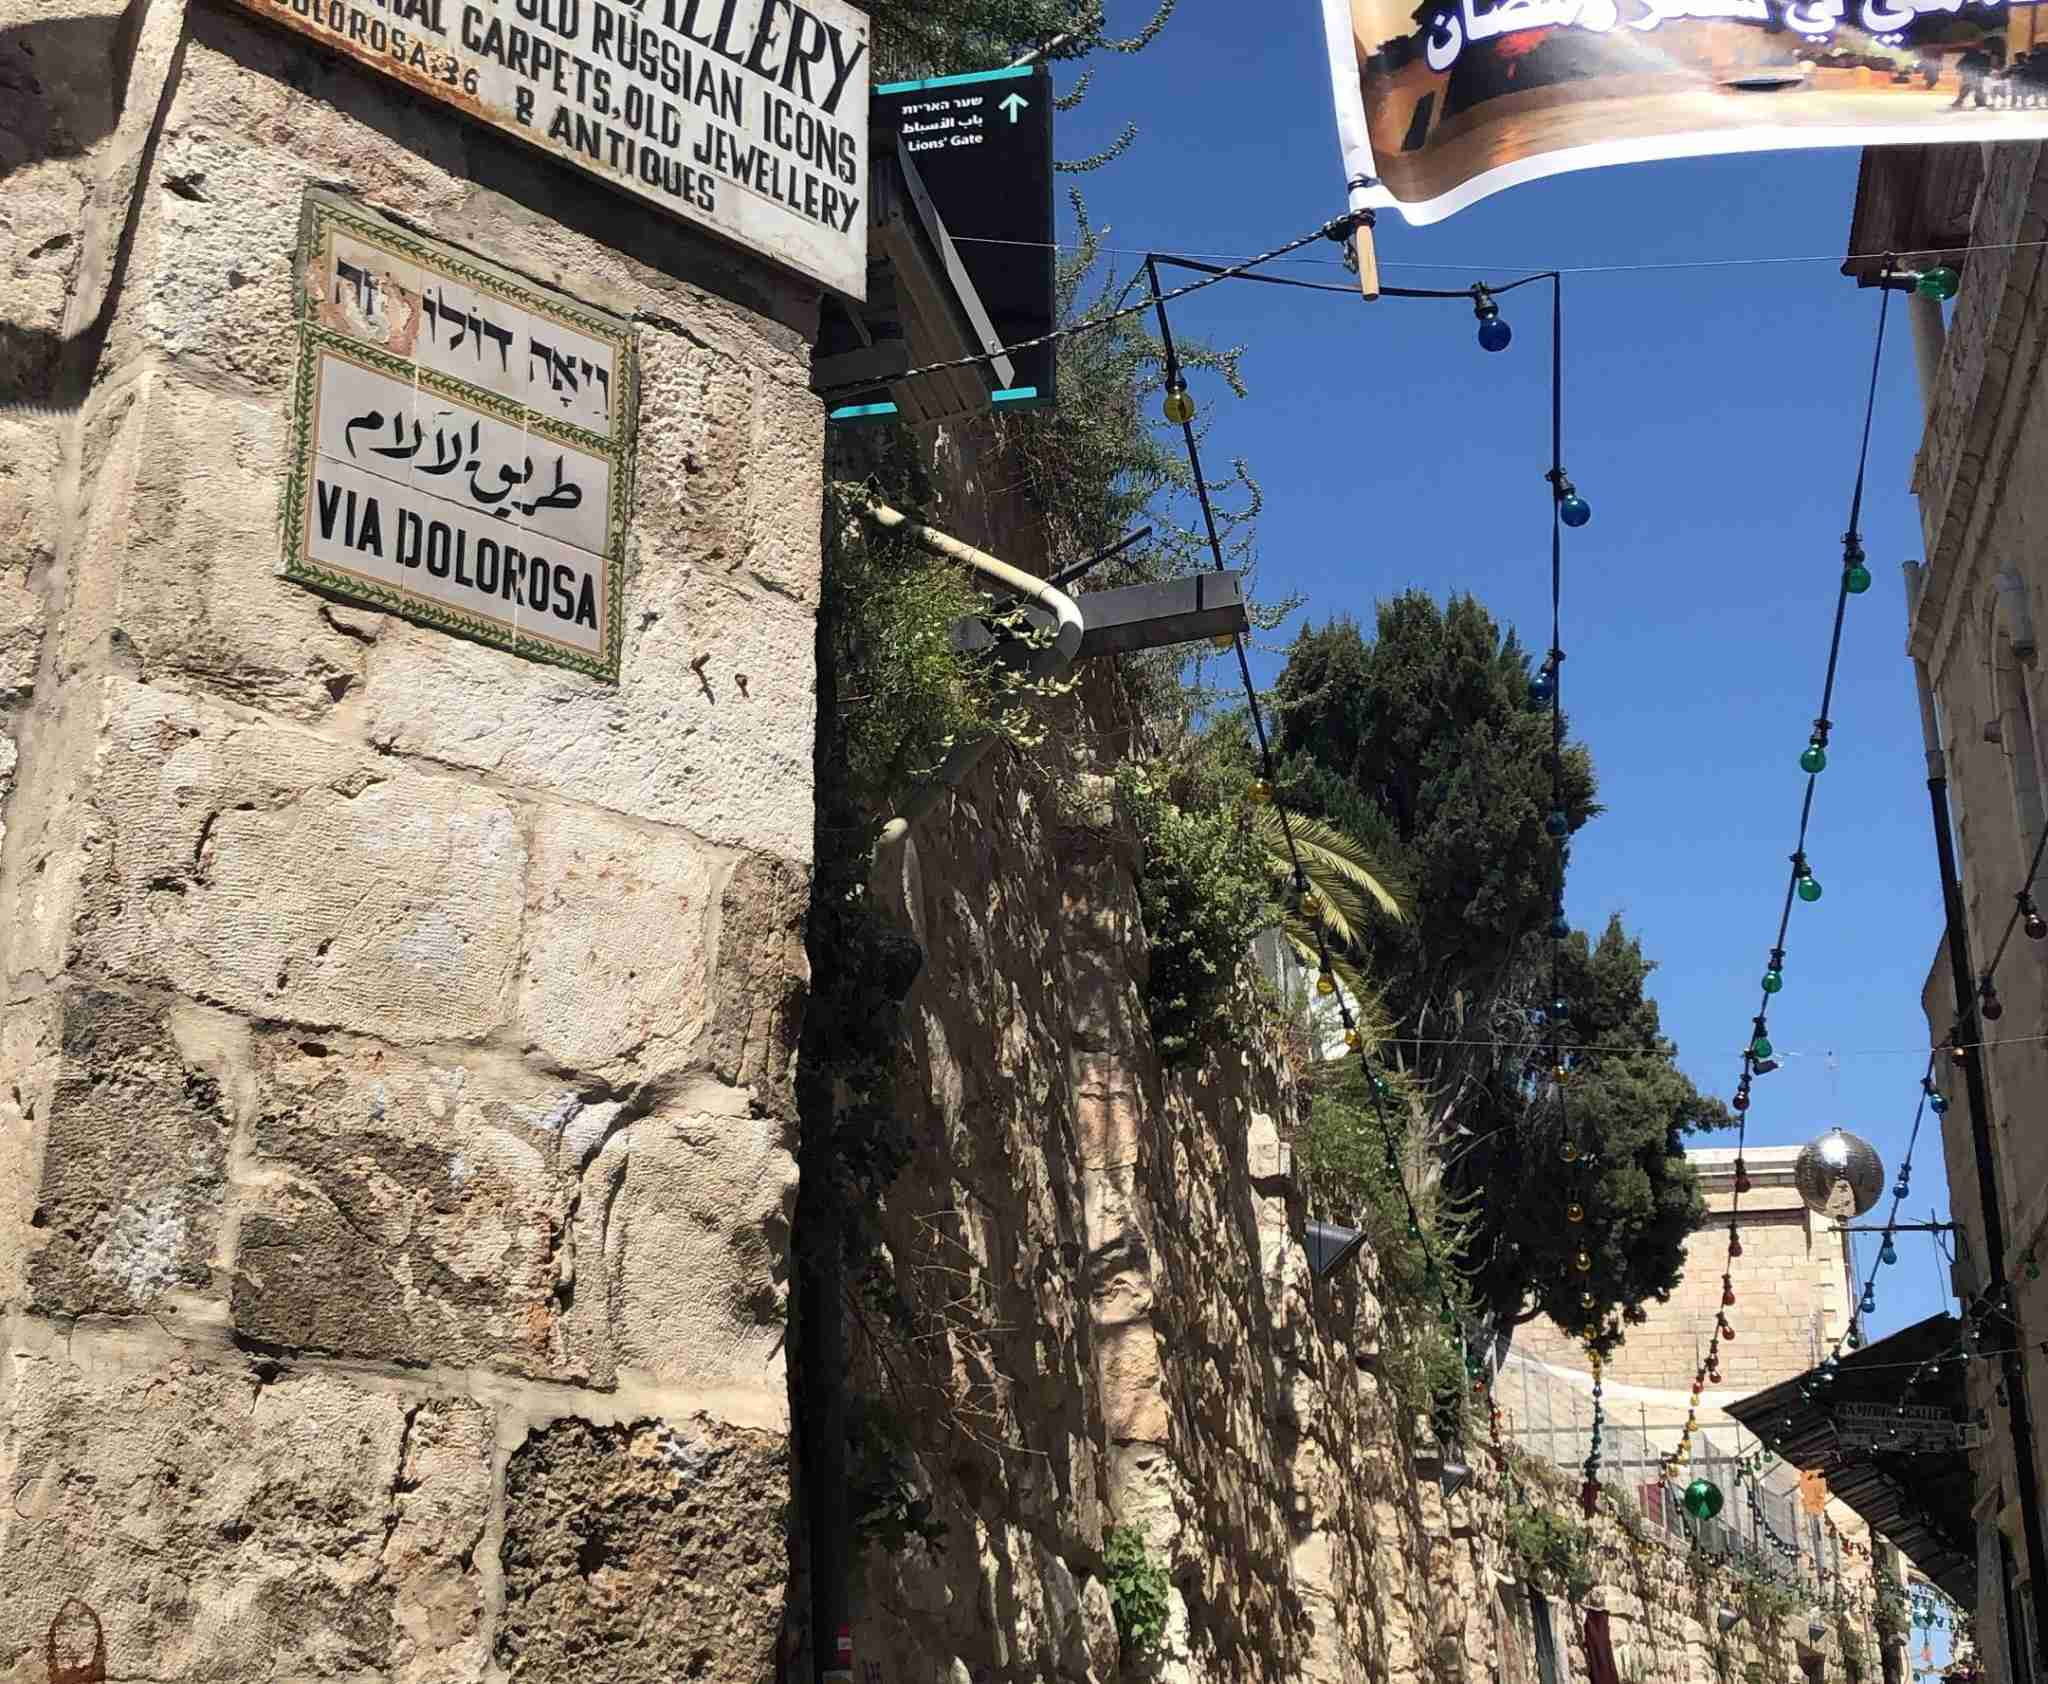 Via Dolorosa. Photo by Lori Zaino.